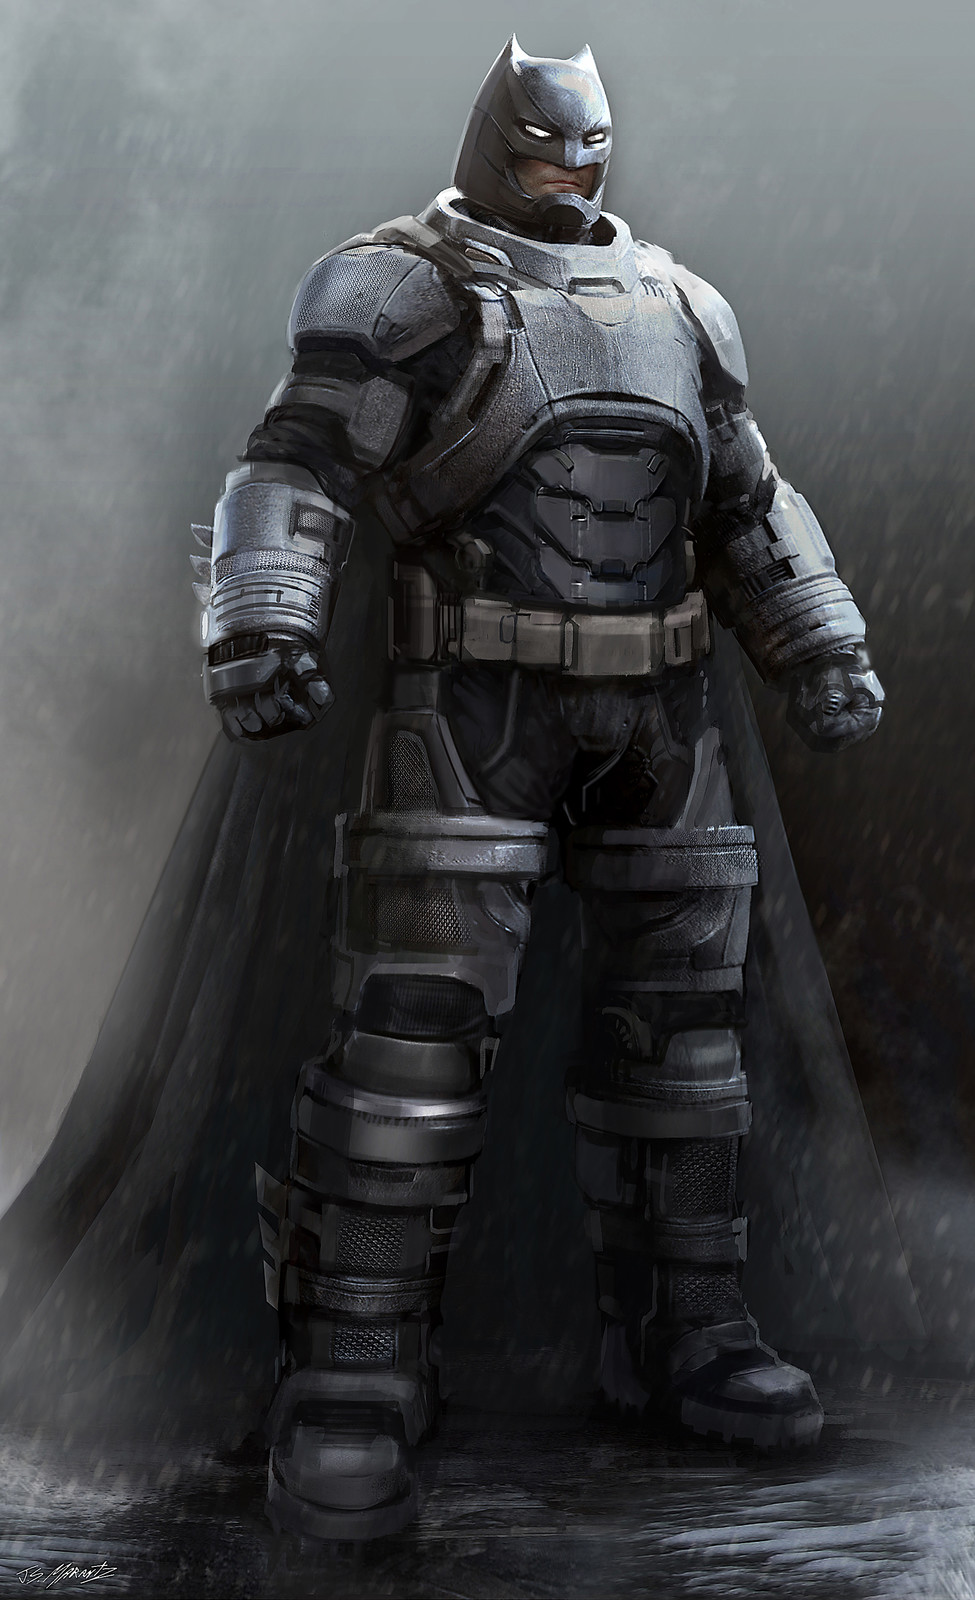 Batman vs. Superman: Batmanmech Concept Art